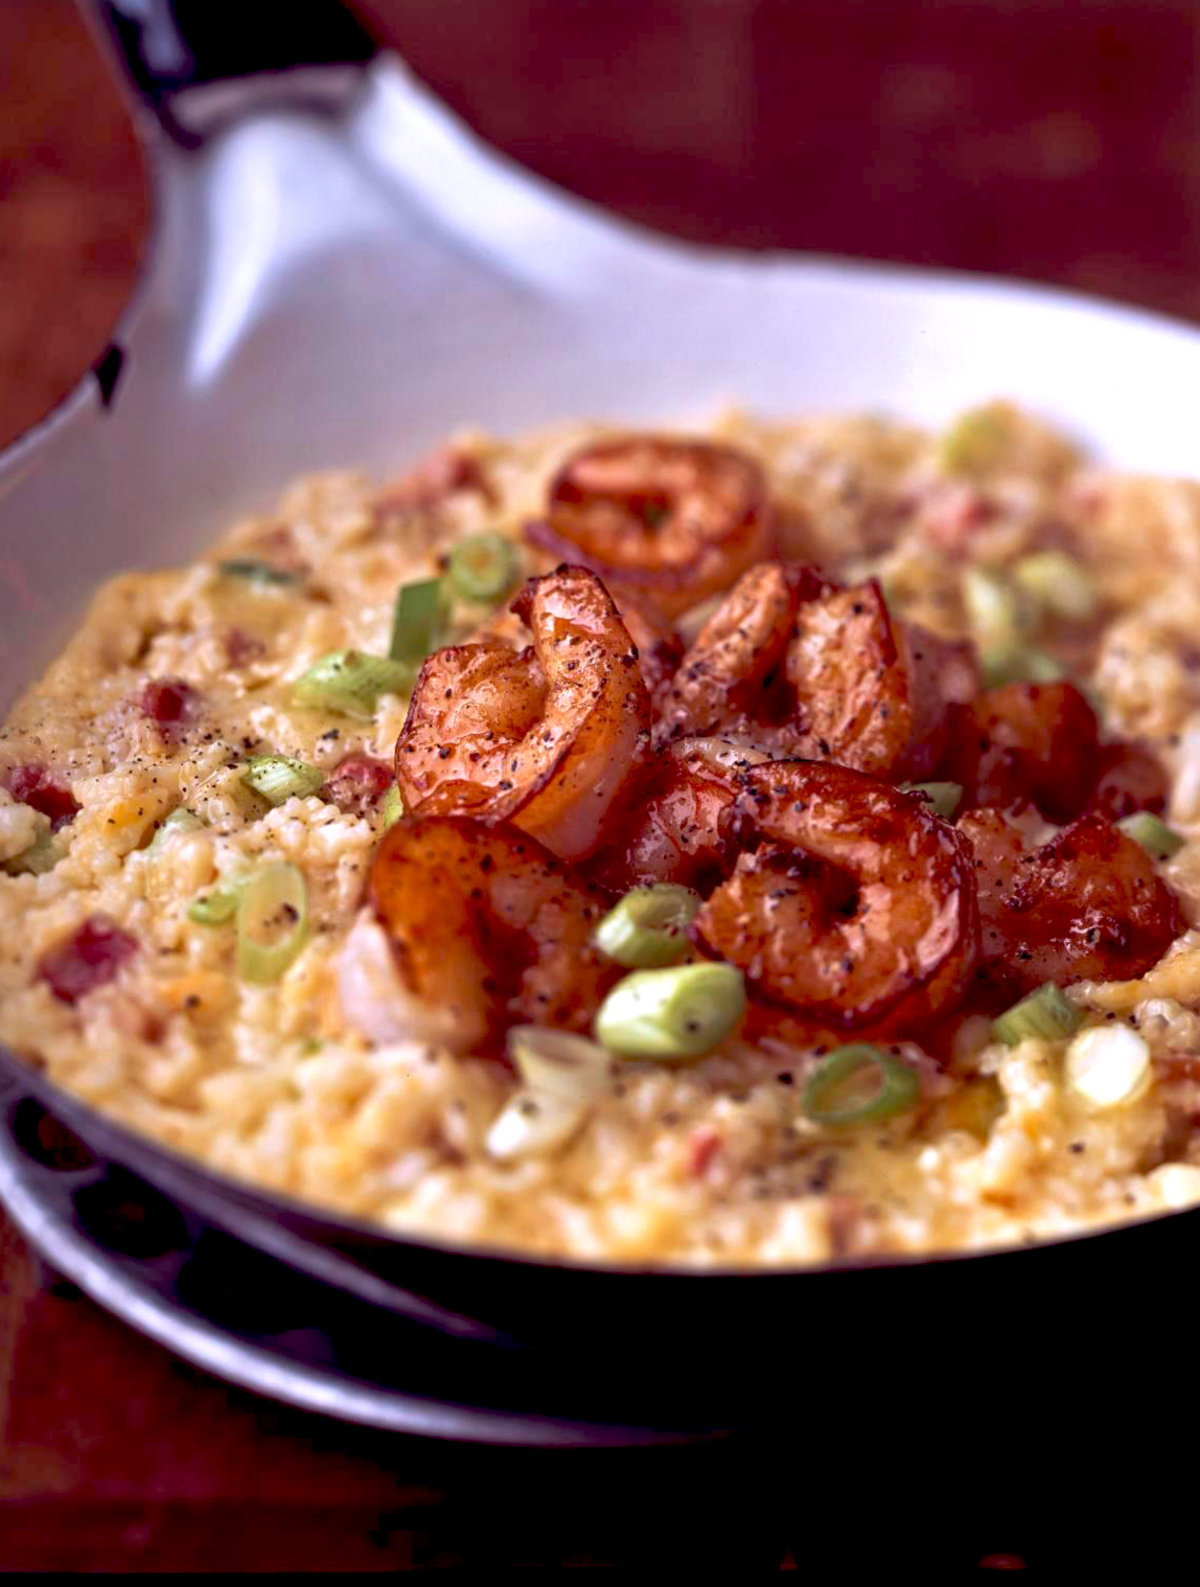 Cheddar Cheese Grits With Shrimp, Pancetta, and Scallions